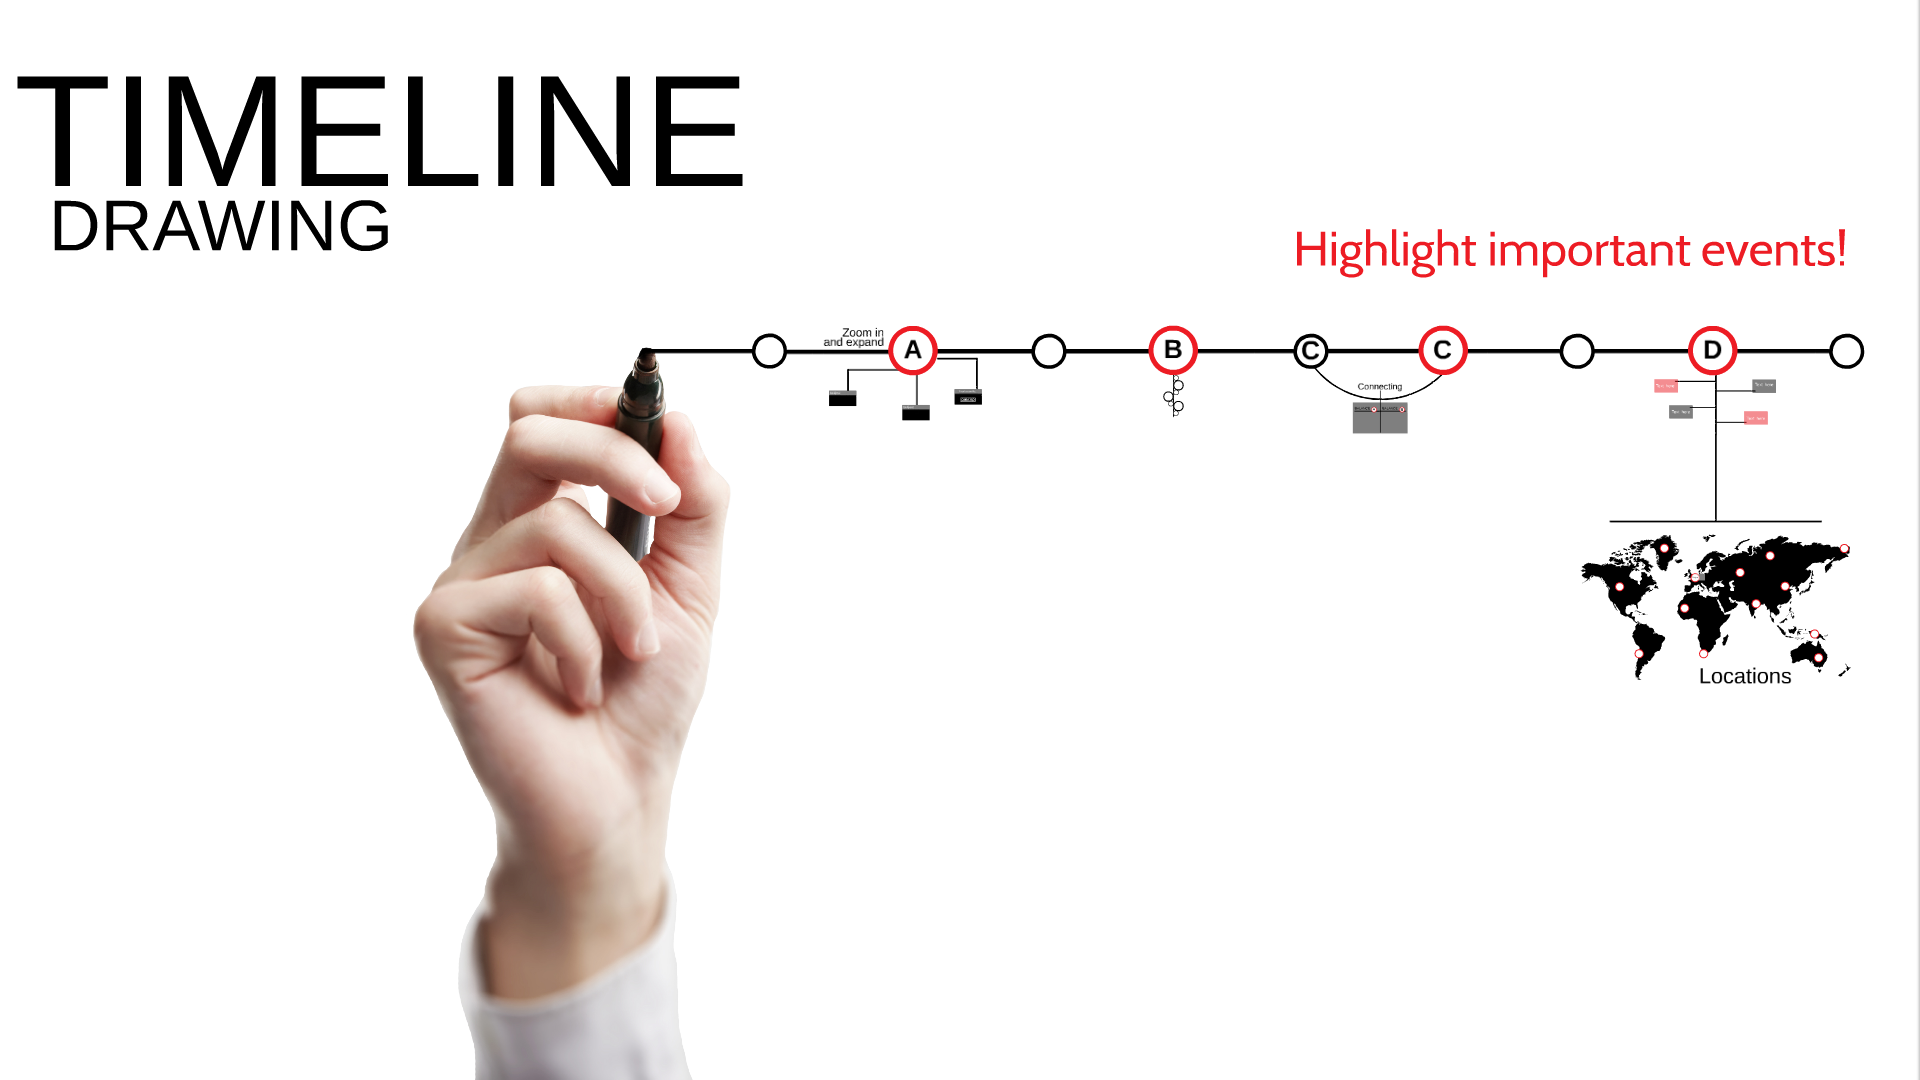 Drawing Timeline Prezi Template Create Your Own Timeline With